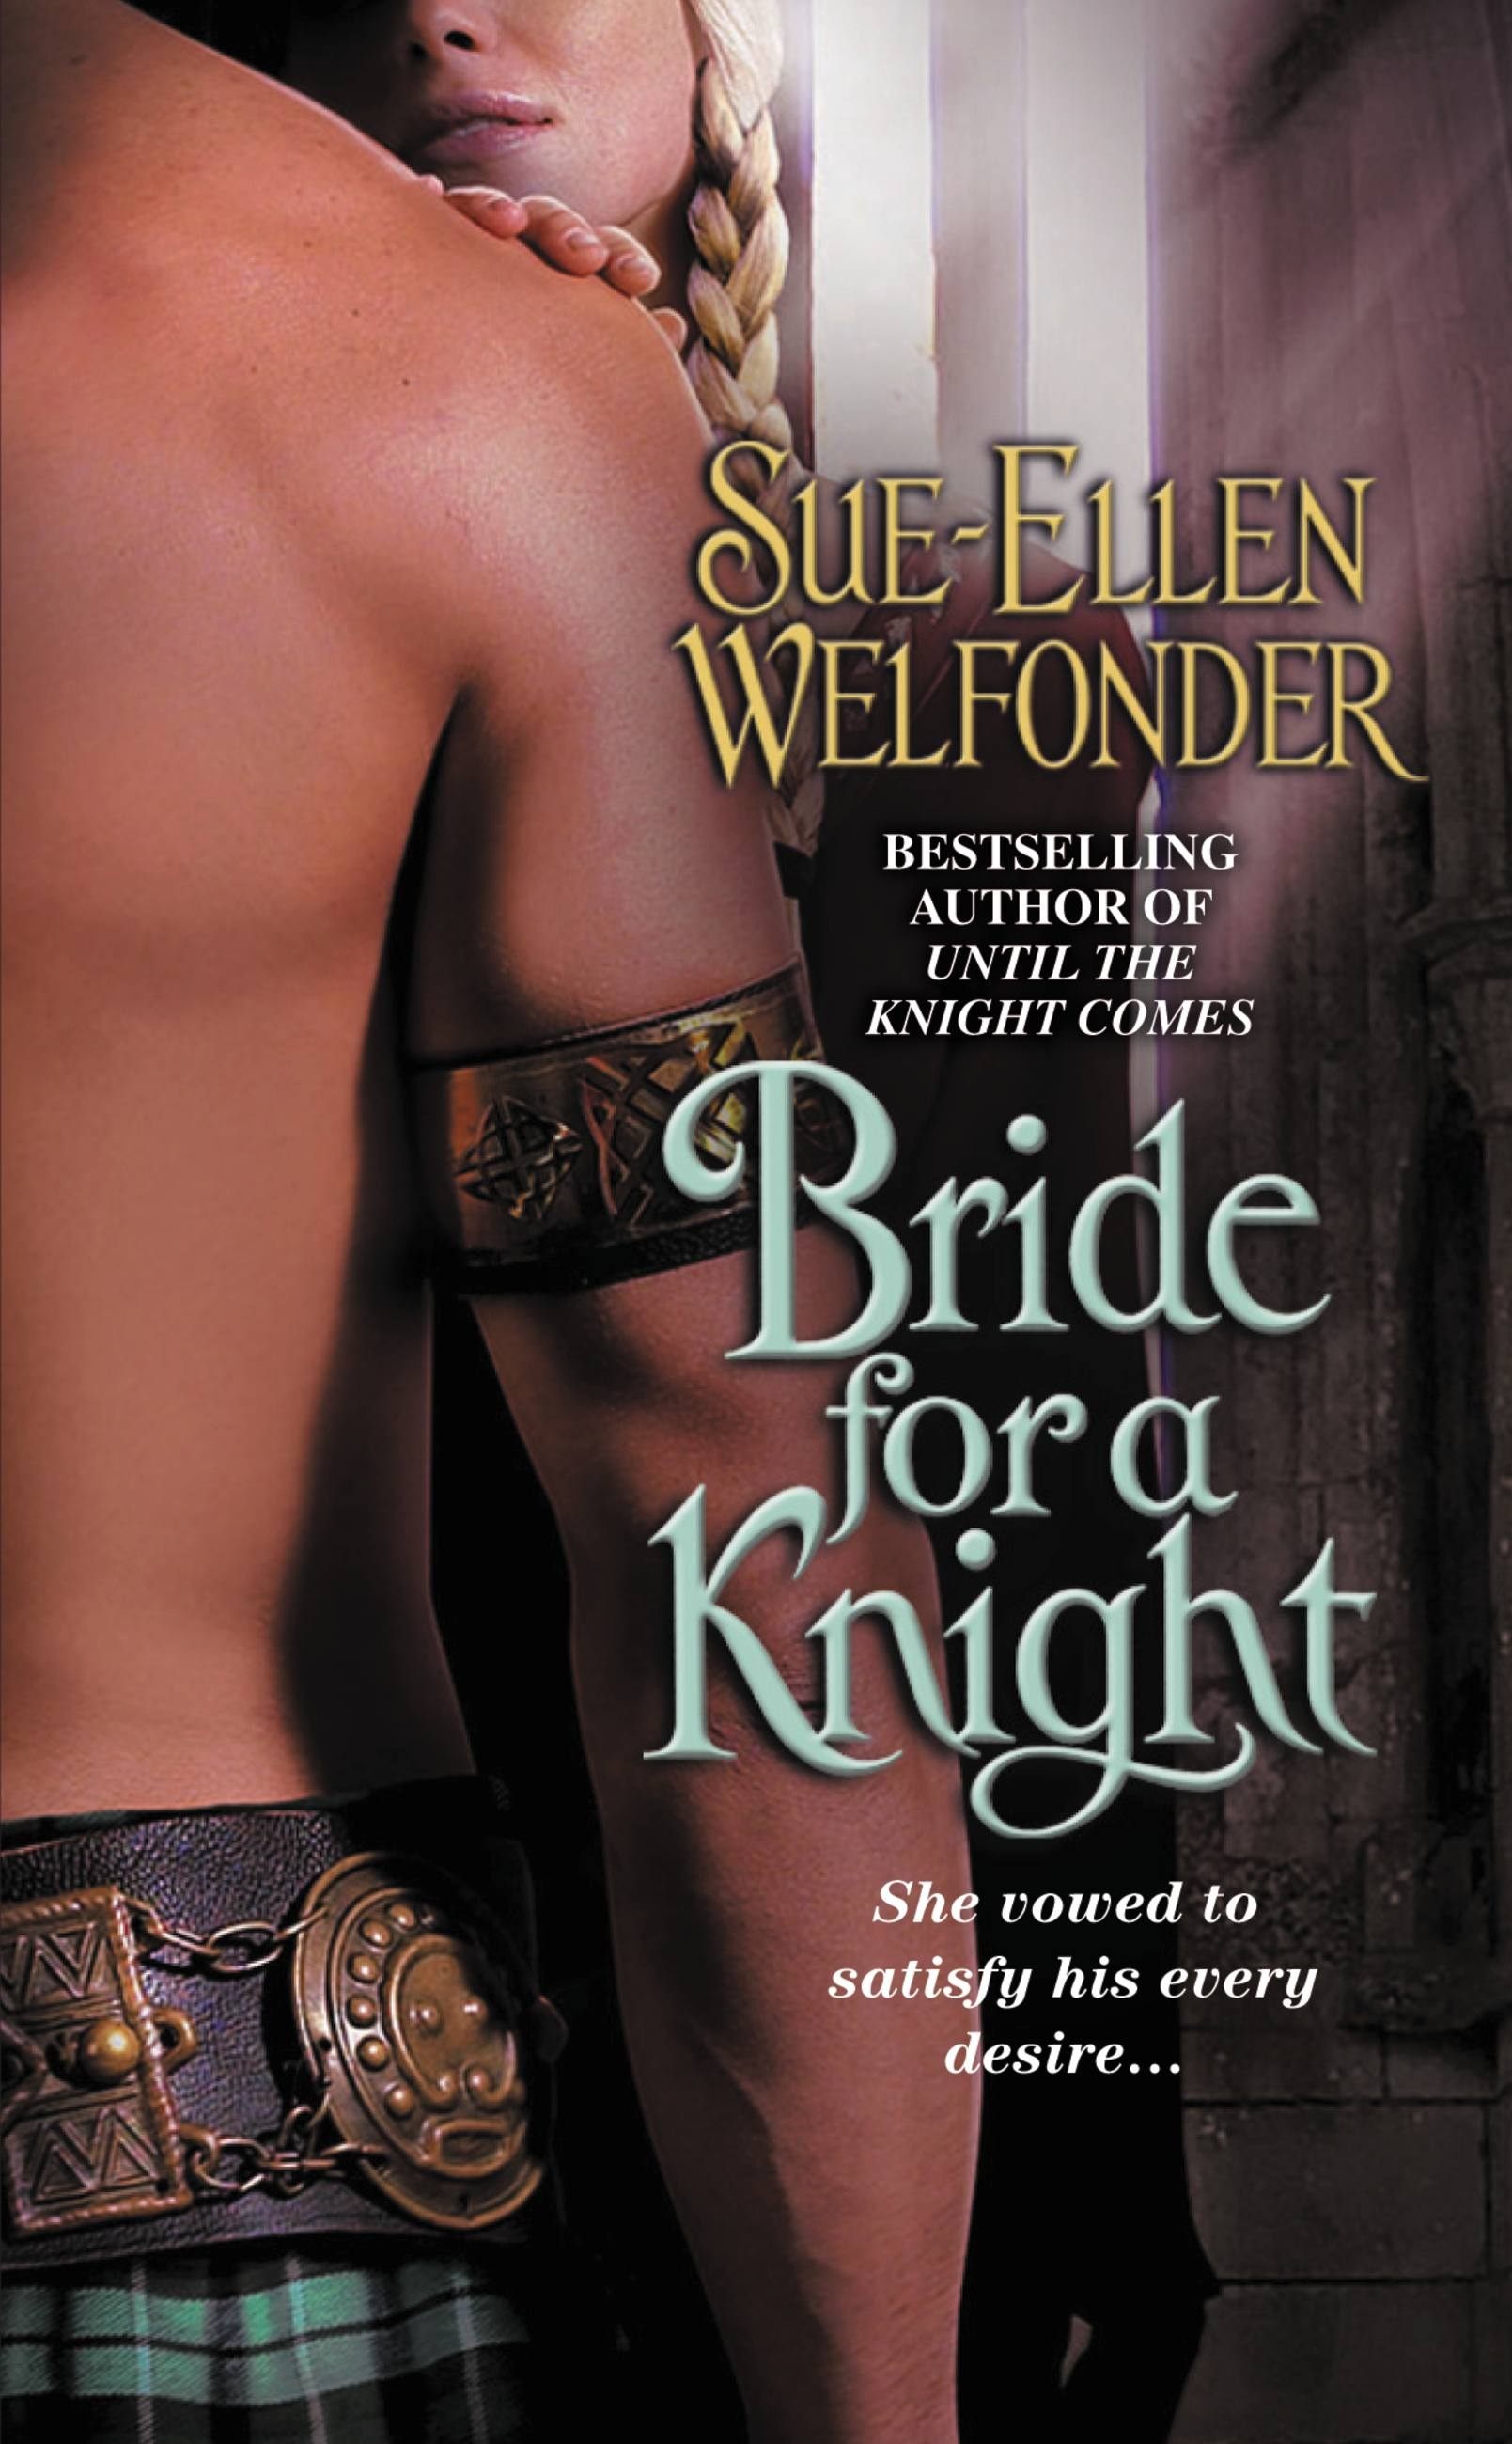 Bride for a Knight